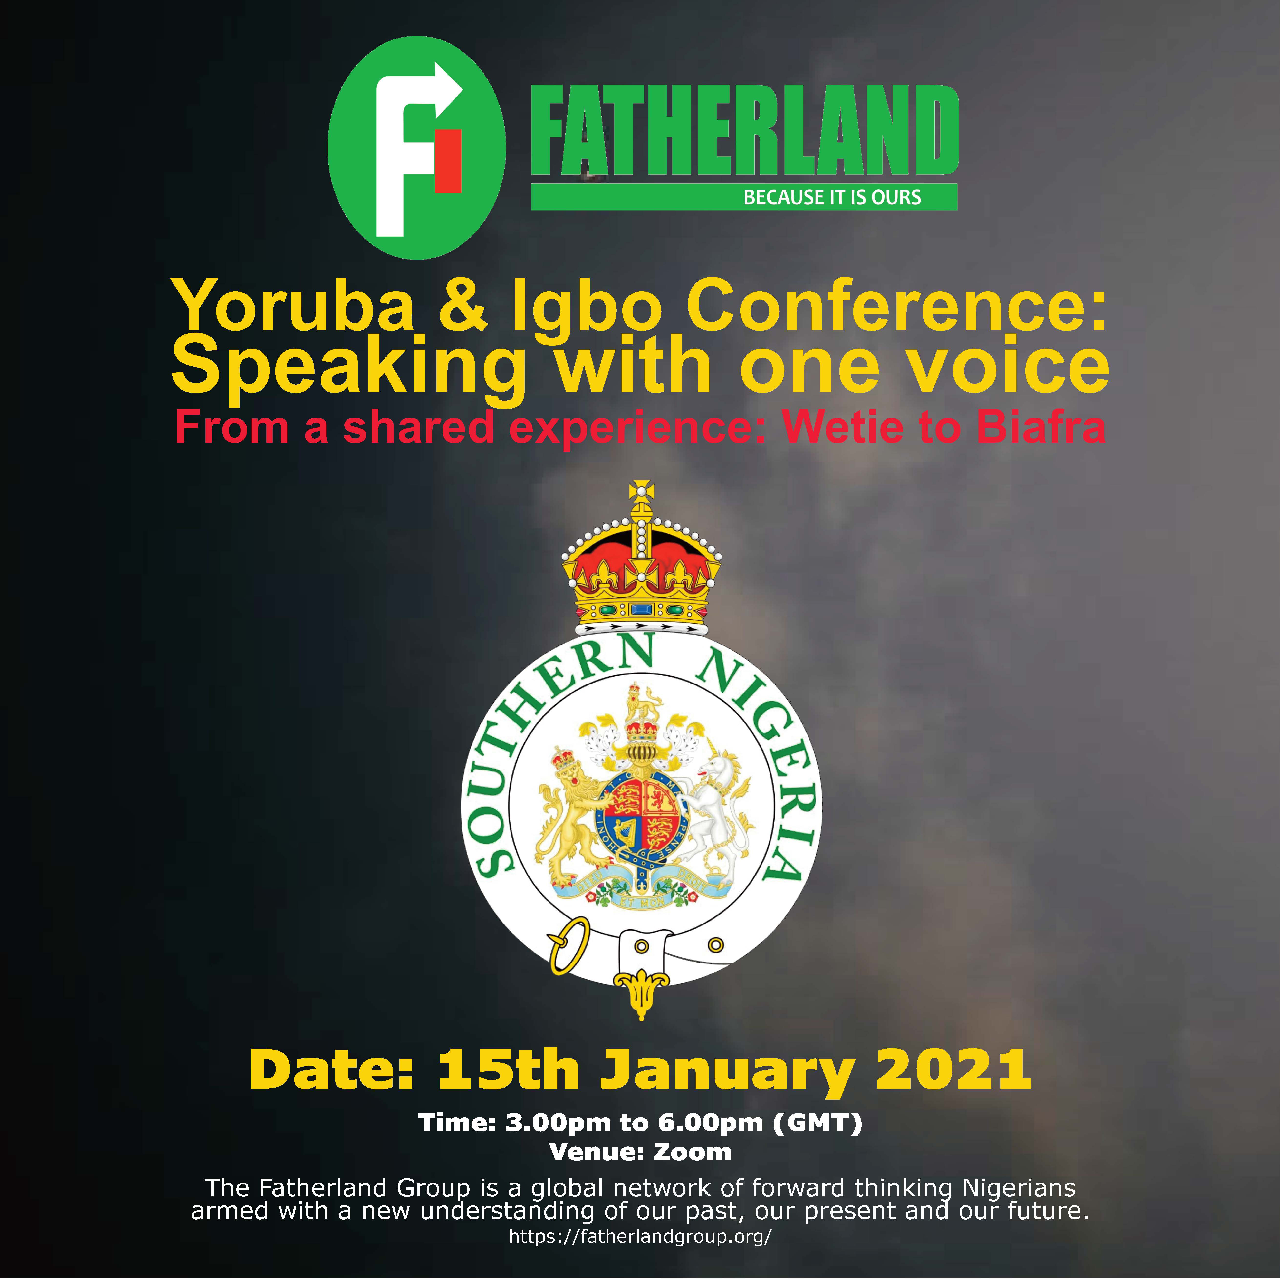 Yoruba and Igbo Conference: Speaking with one voice (From a shared experience: Wetie to Biafra)